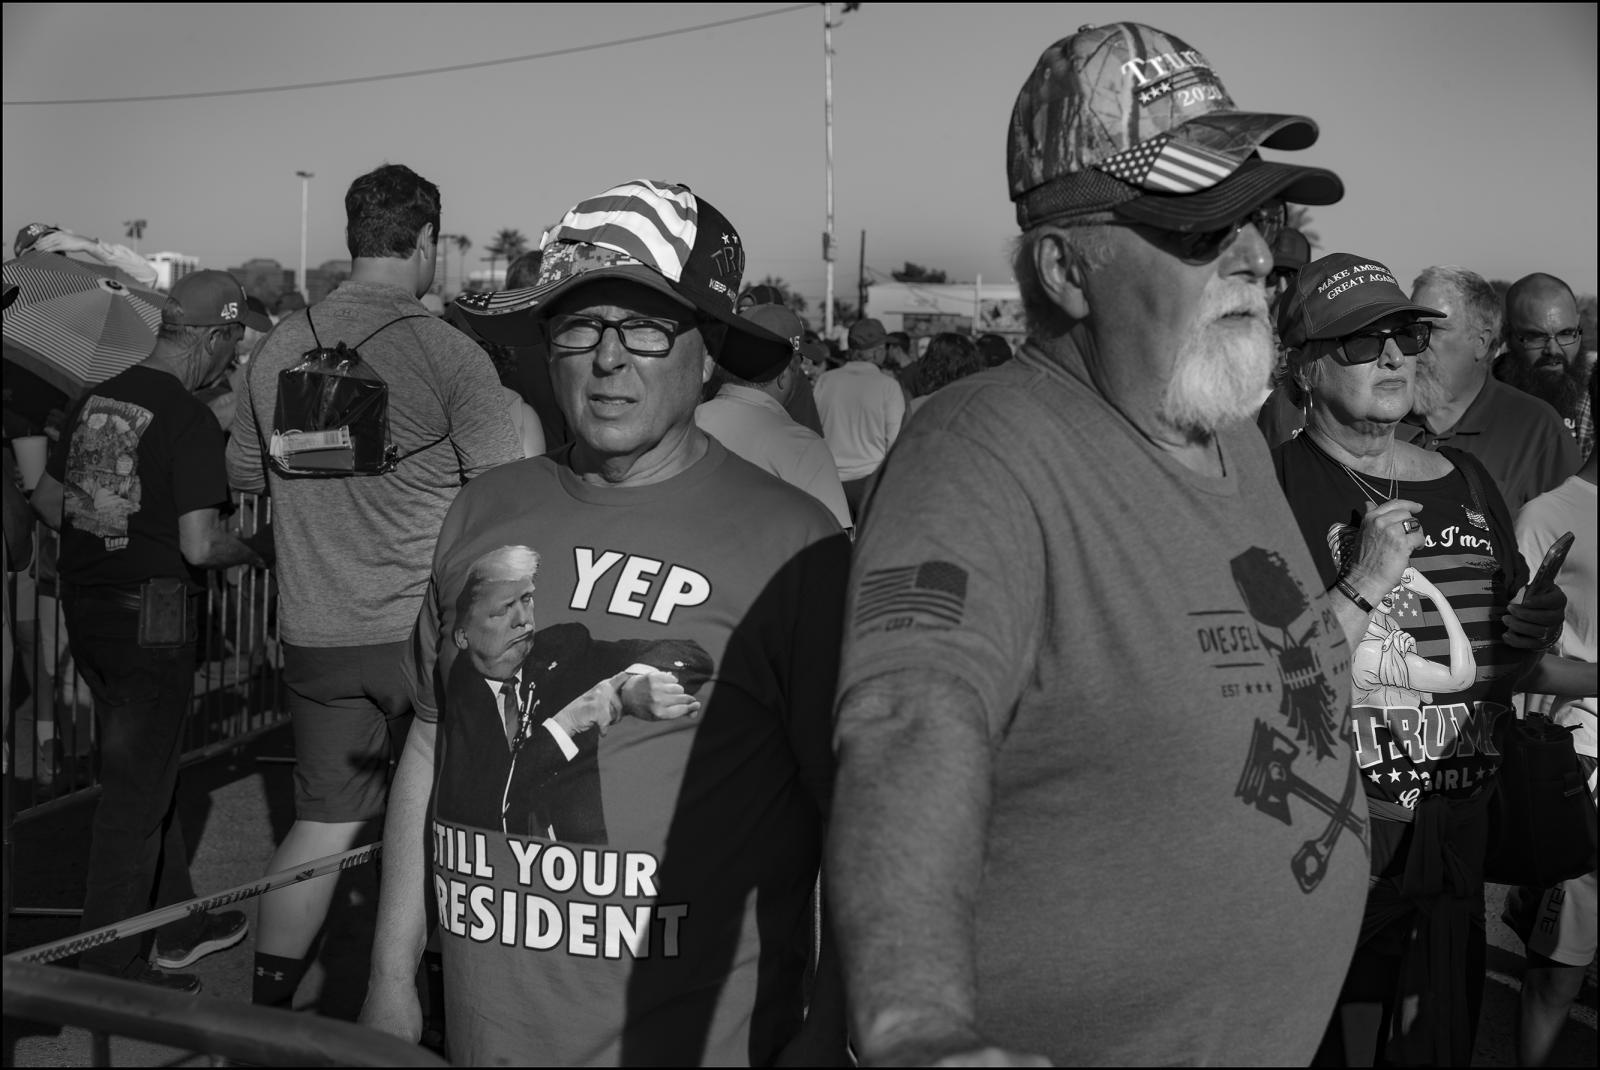 Waiting in lines to attend campaign rally in Phoenix, Arizona USA. Donald Trump supporters.February 2020.